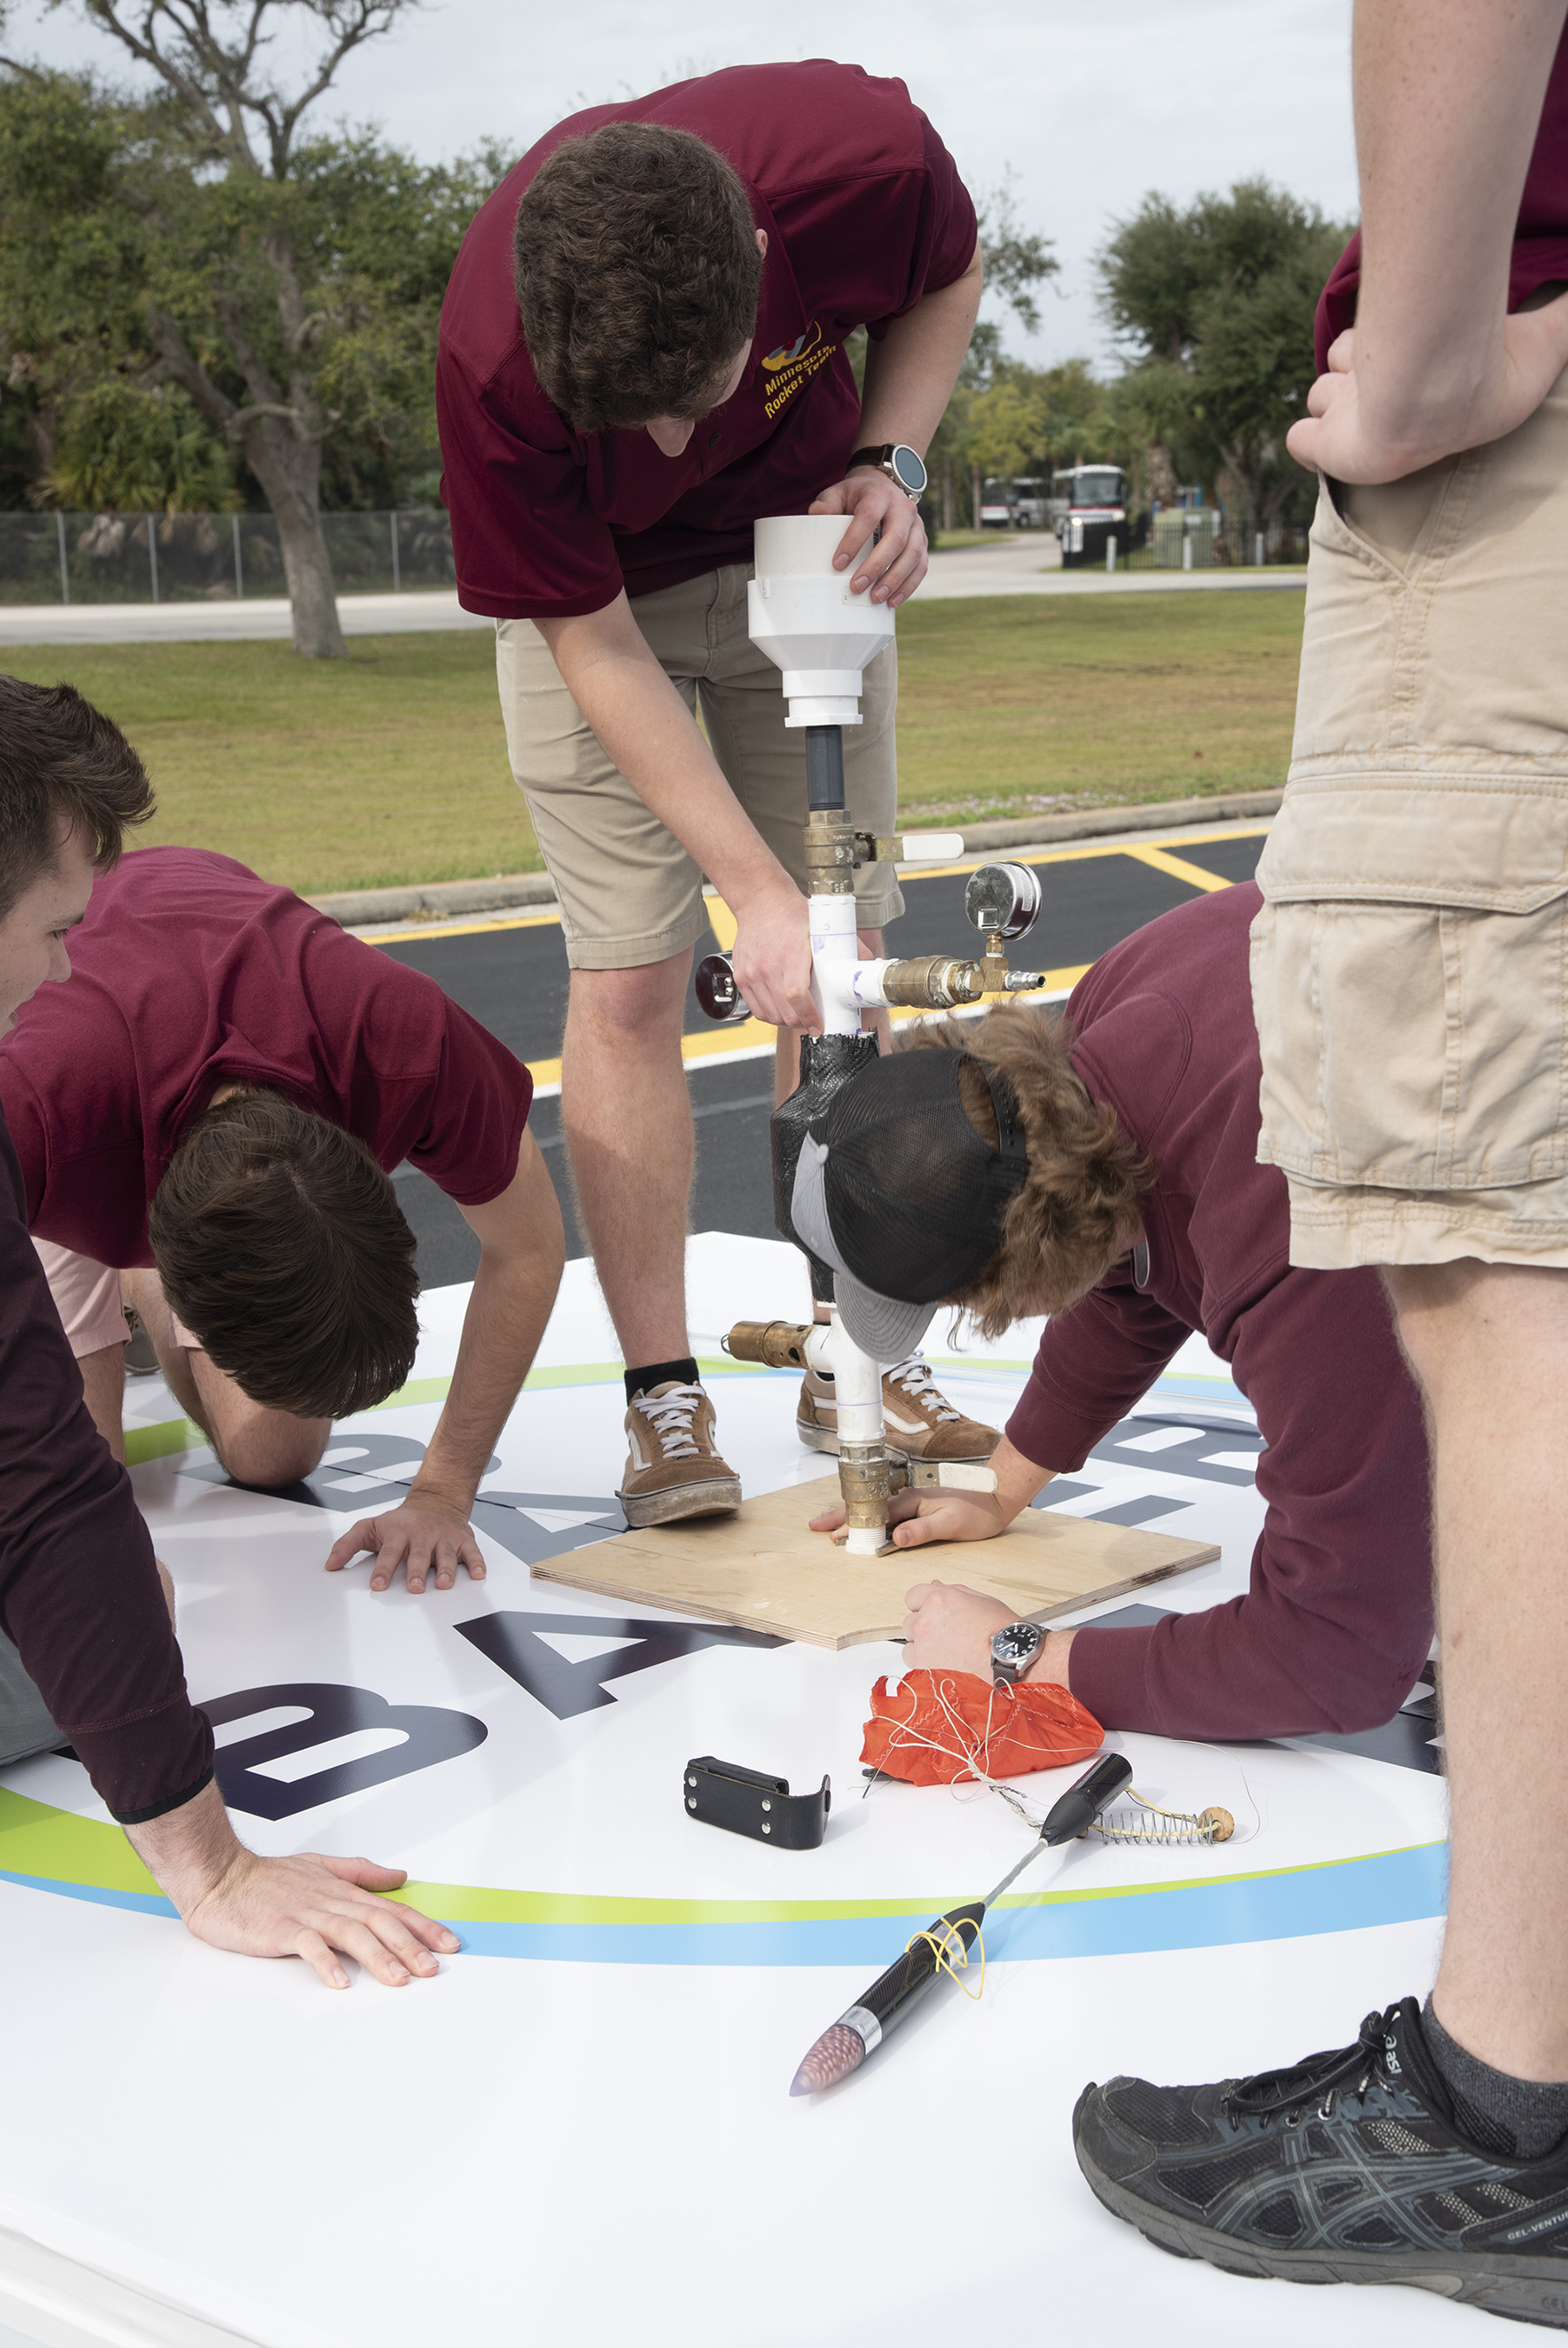 The team from the University of Minnesota prepares to launch their rocket at the 2019 Alka-Rocket Challenge on Thursday.